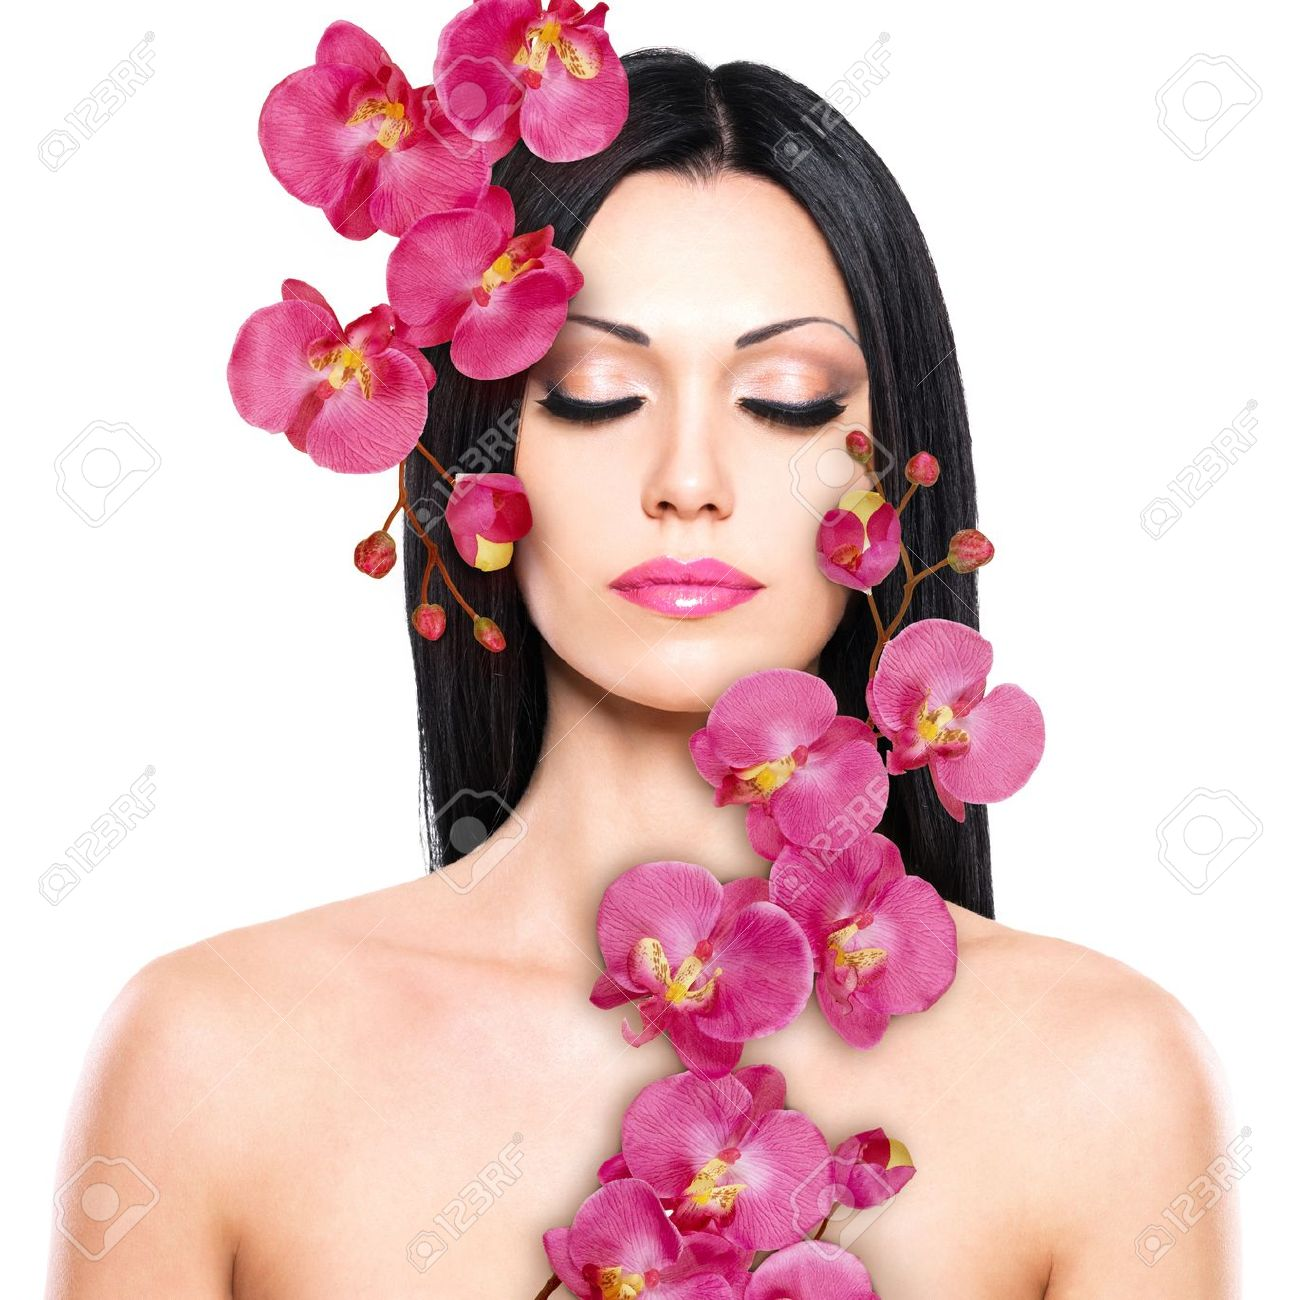 Young woman with beautiful face and fresh flowers skin care young woman with beautiful face and fresh flowers skin care concept stock photo dhlflorist Gallery